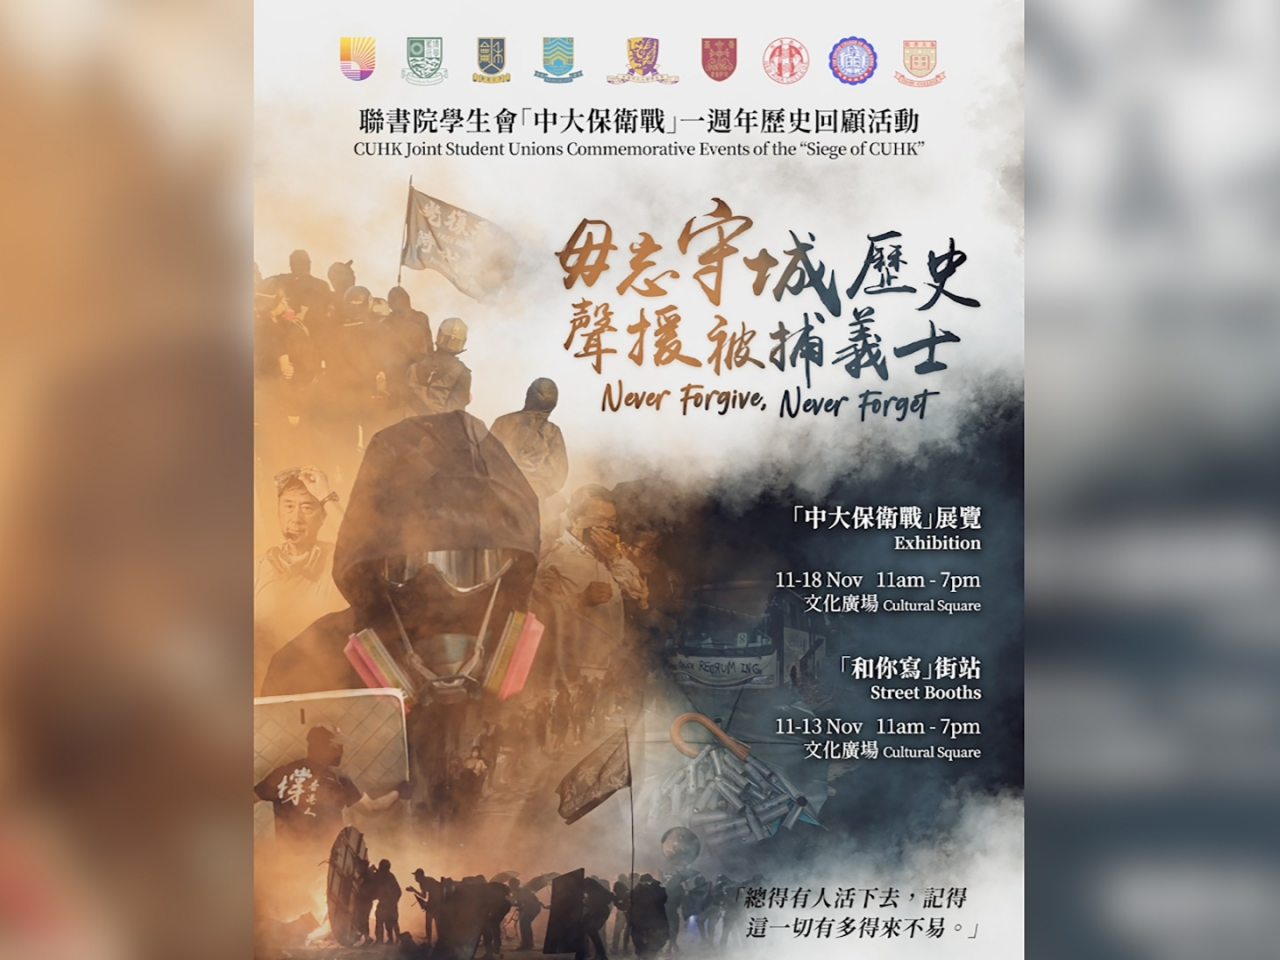 CUHK warns students over 'unlawful' posters